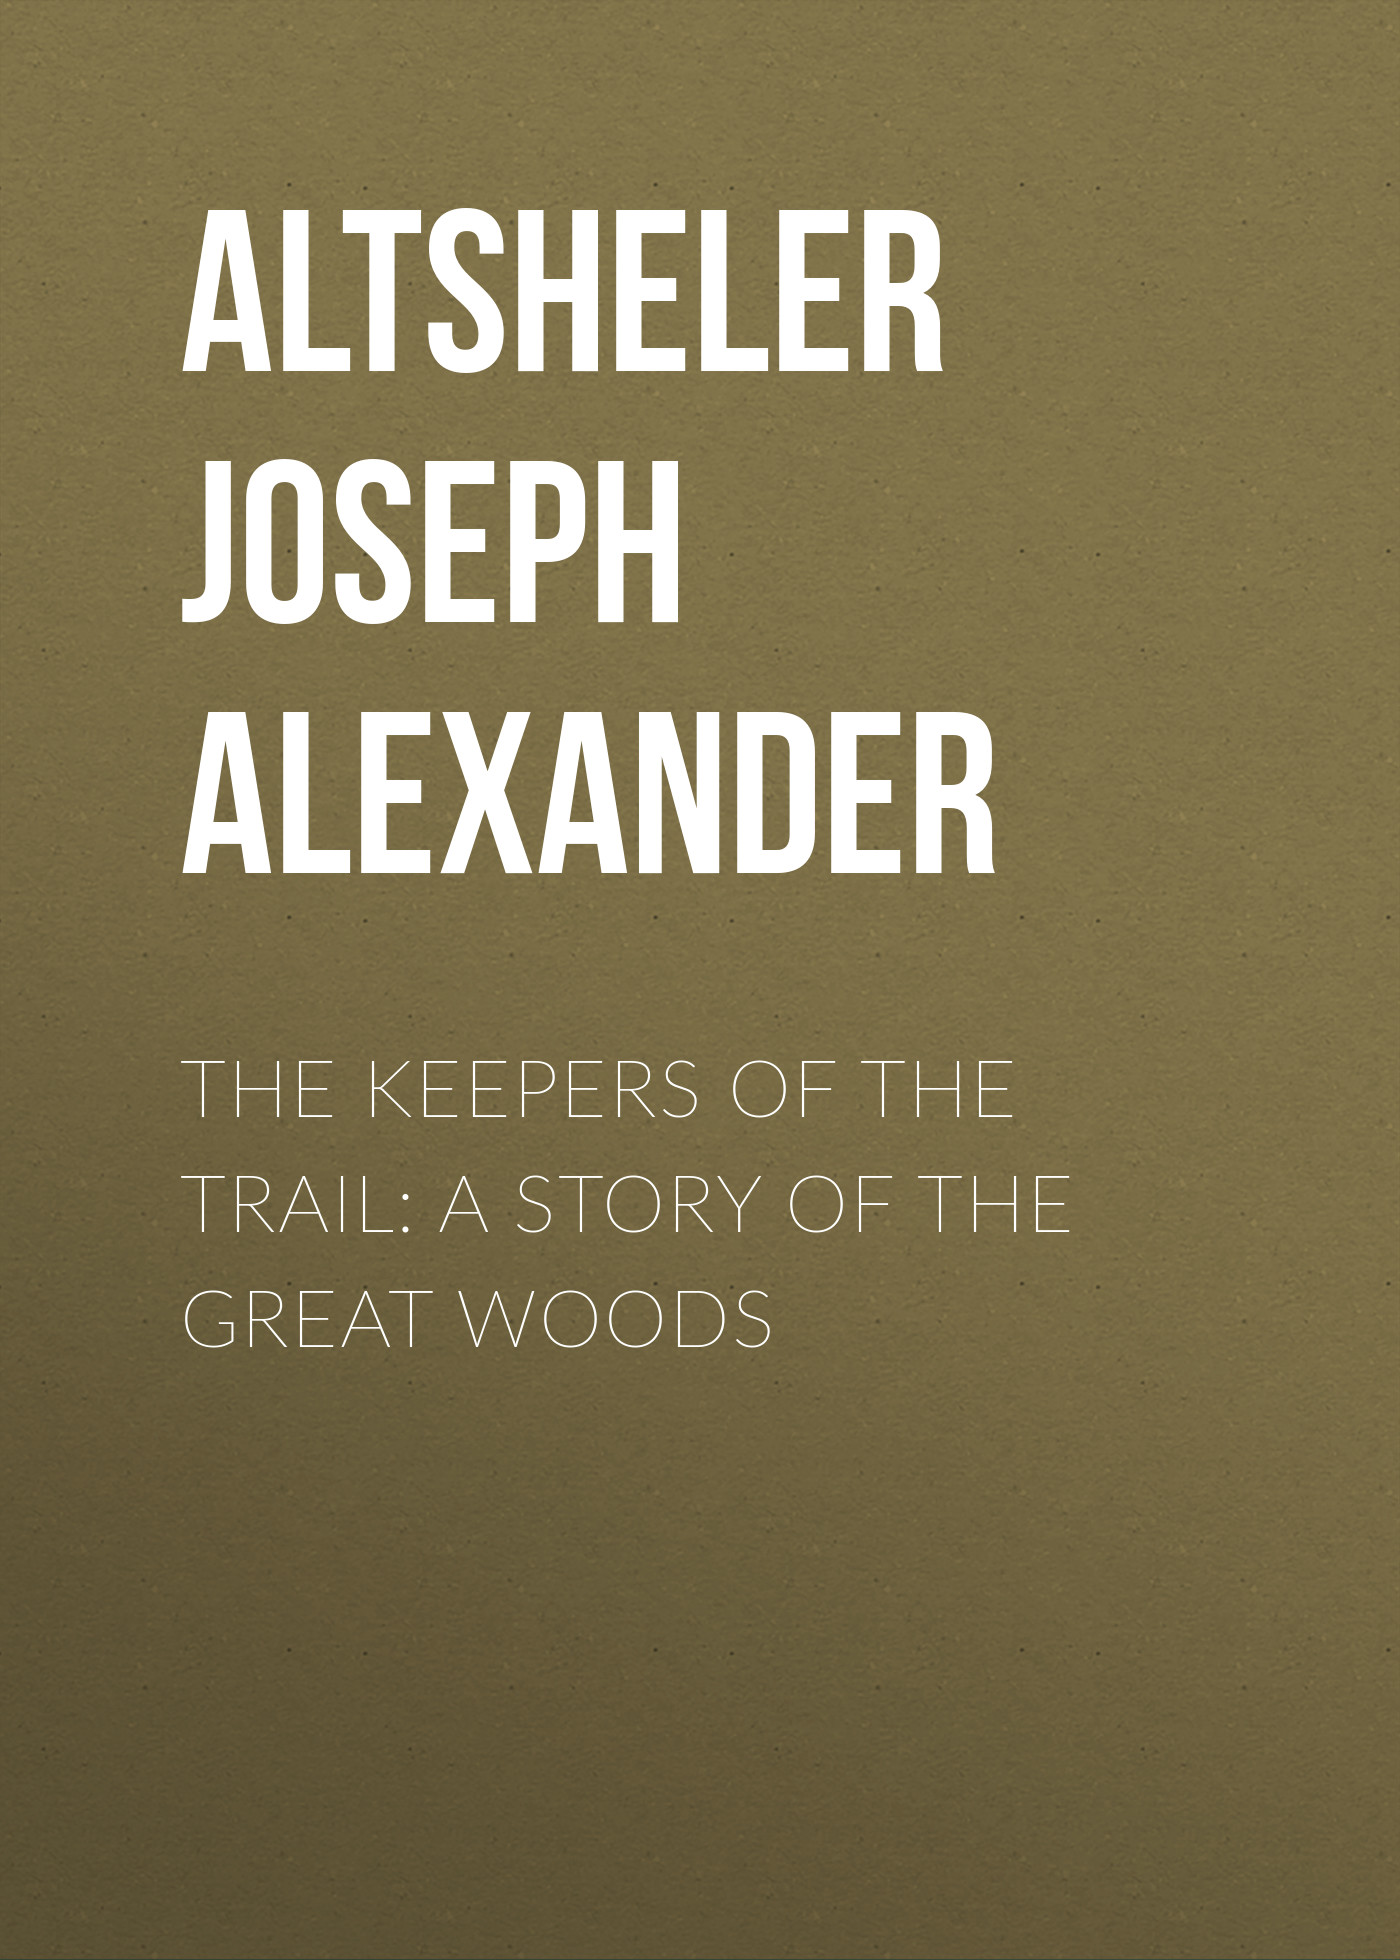 Altsheler Joseph Alexander The Keepers of the Trail: A Story of the Great Woods trail of blood